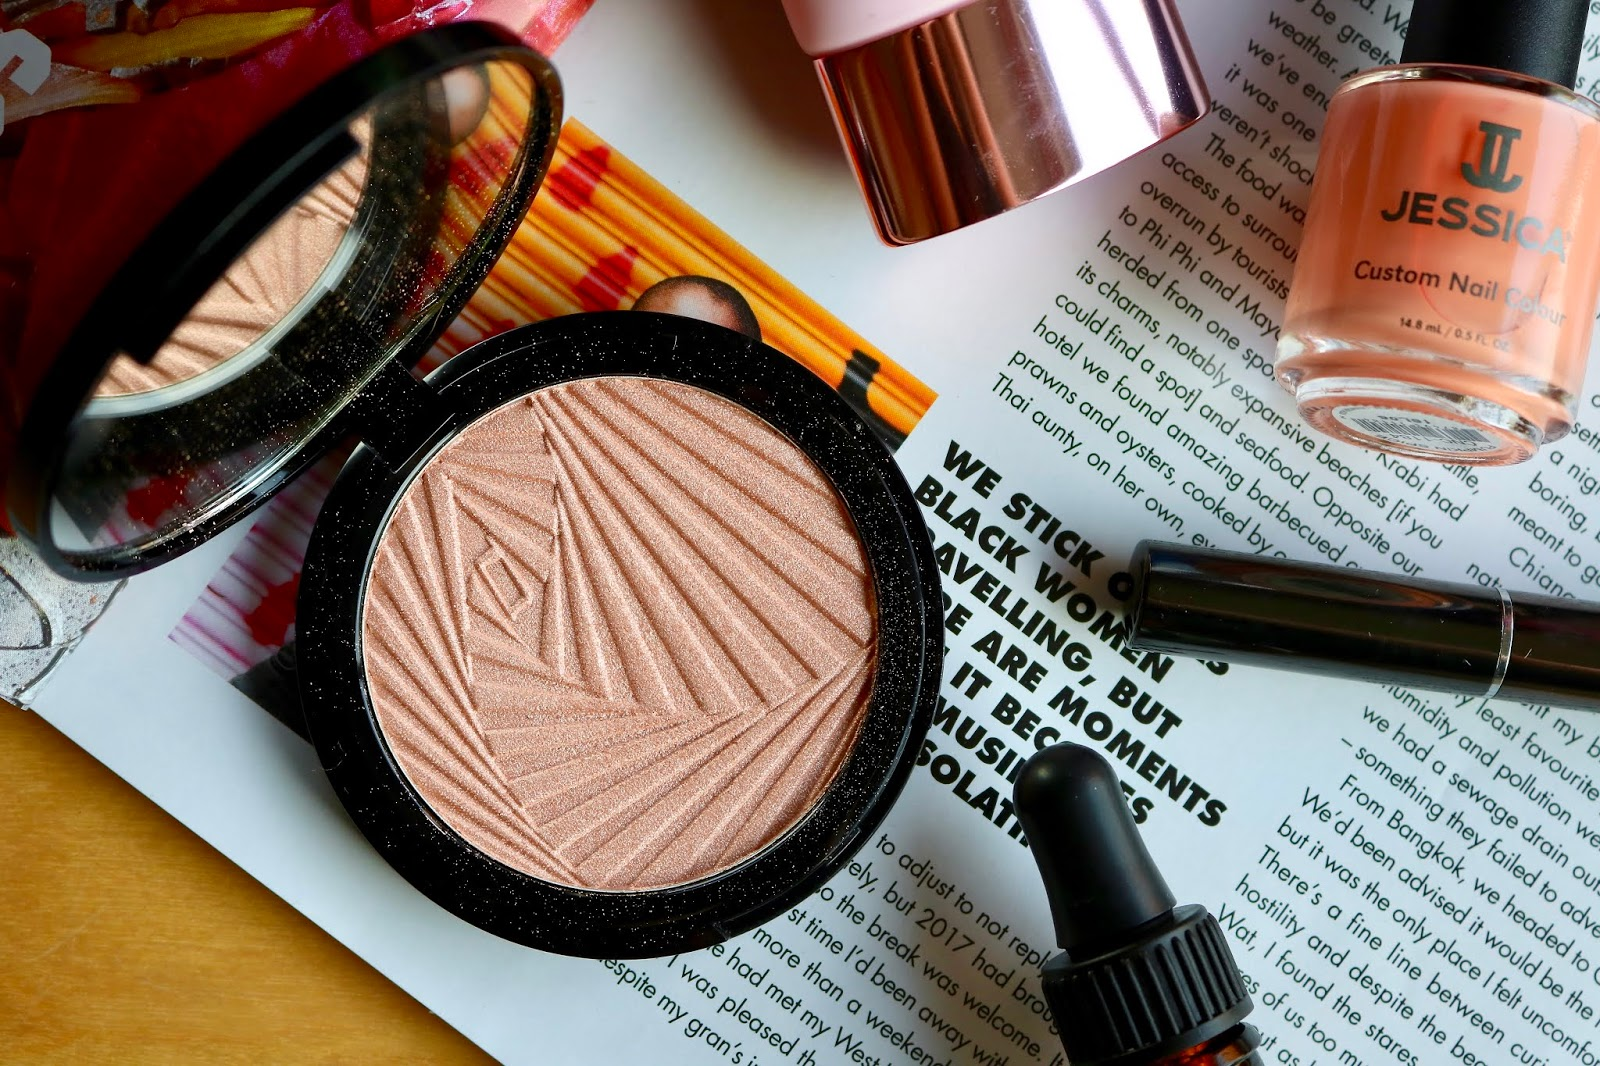 Mii Cosmetics highlighter in Leading Lady